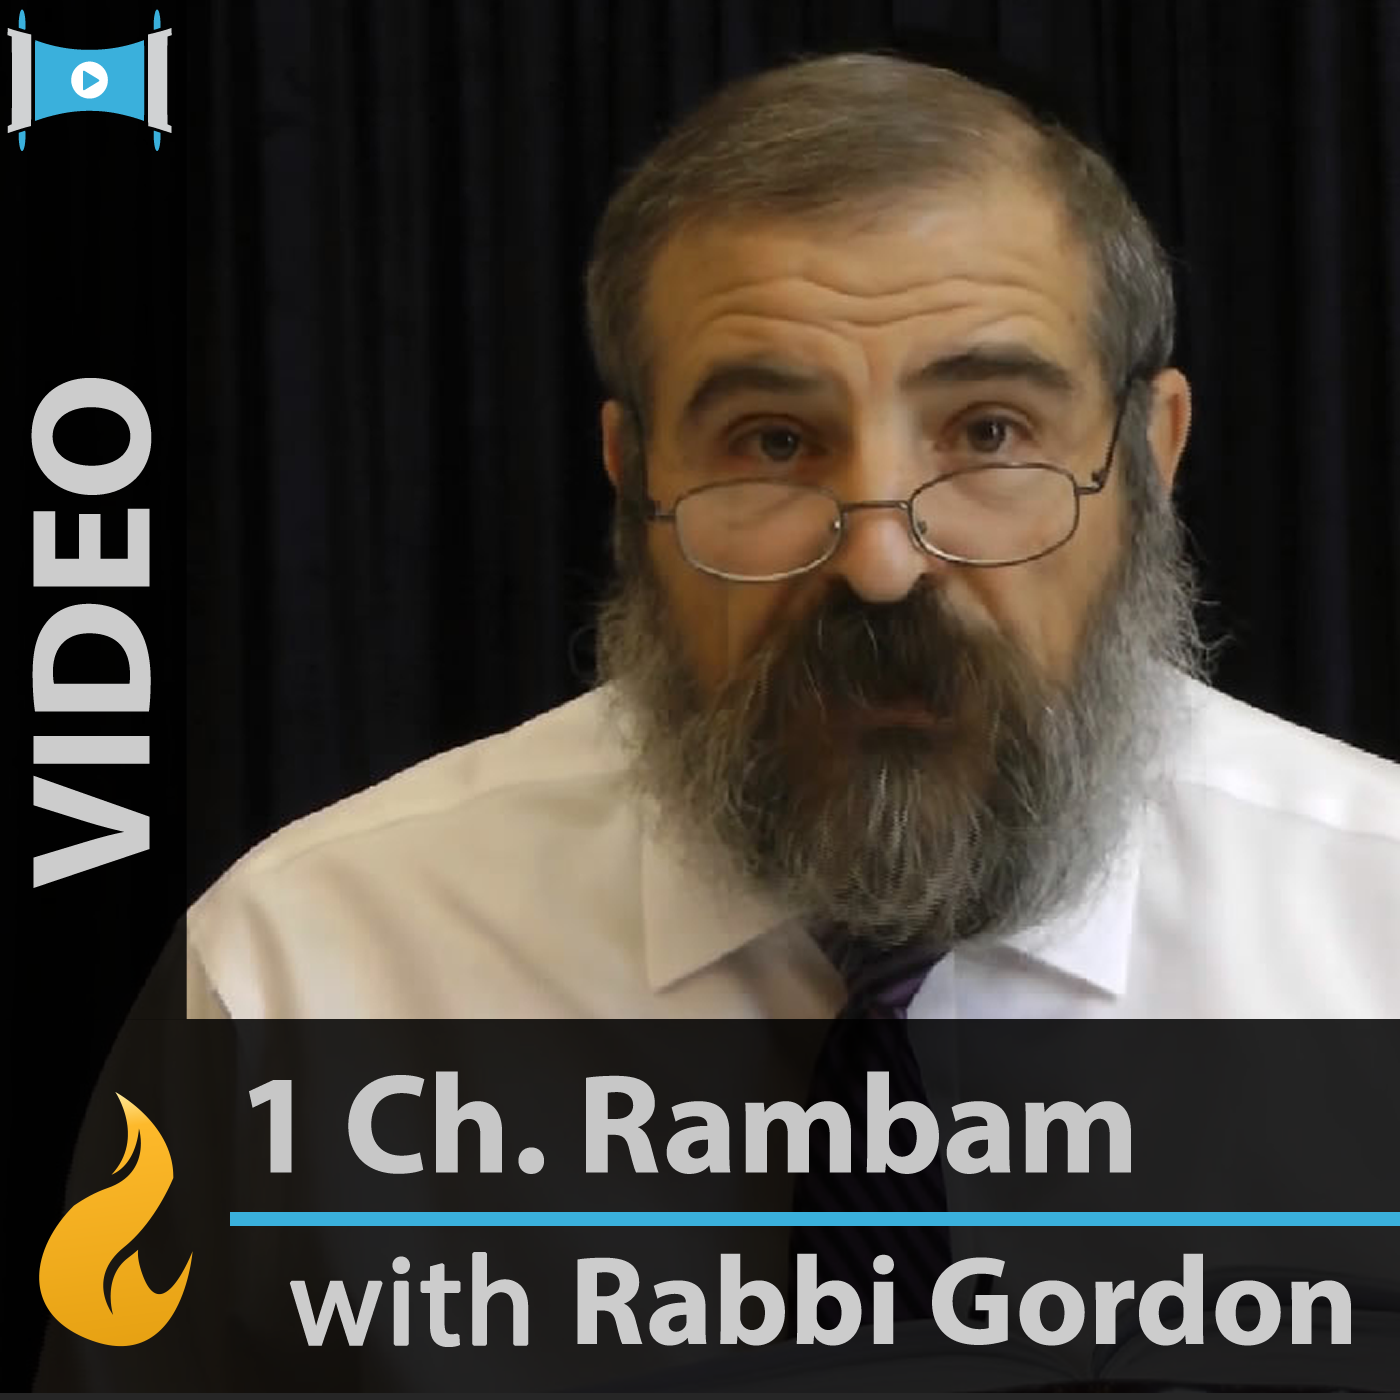 Rambam - 1 Chapter a Day (Video)